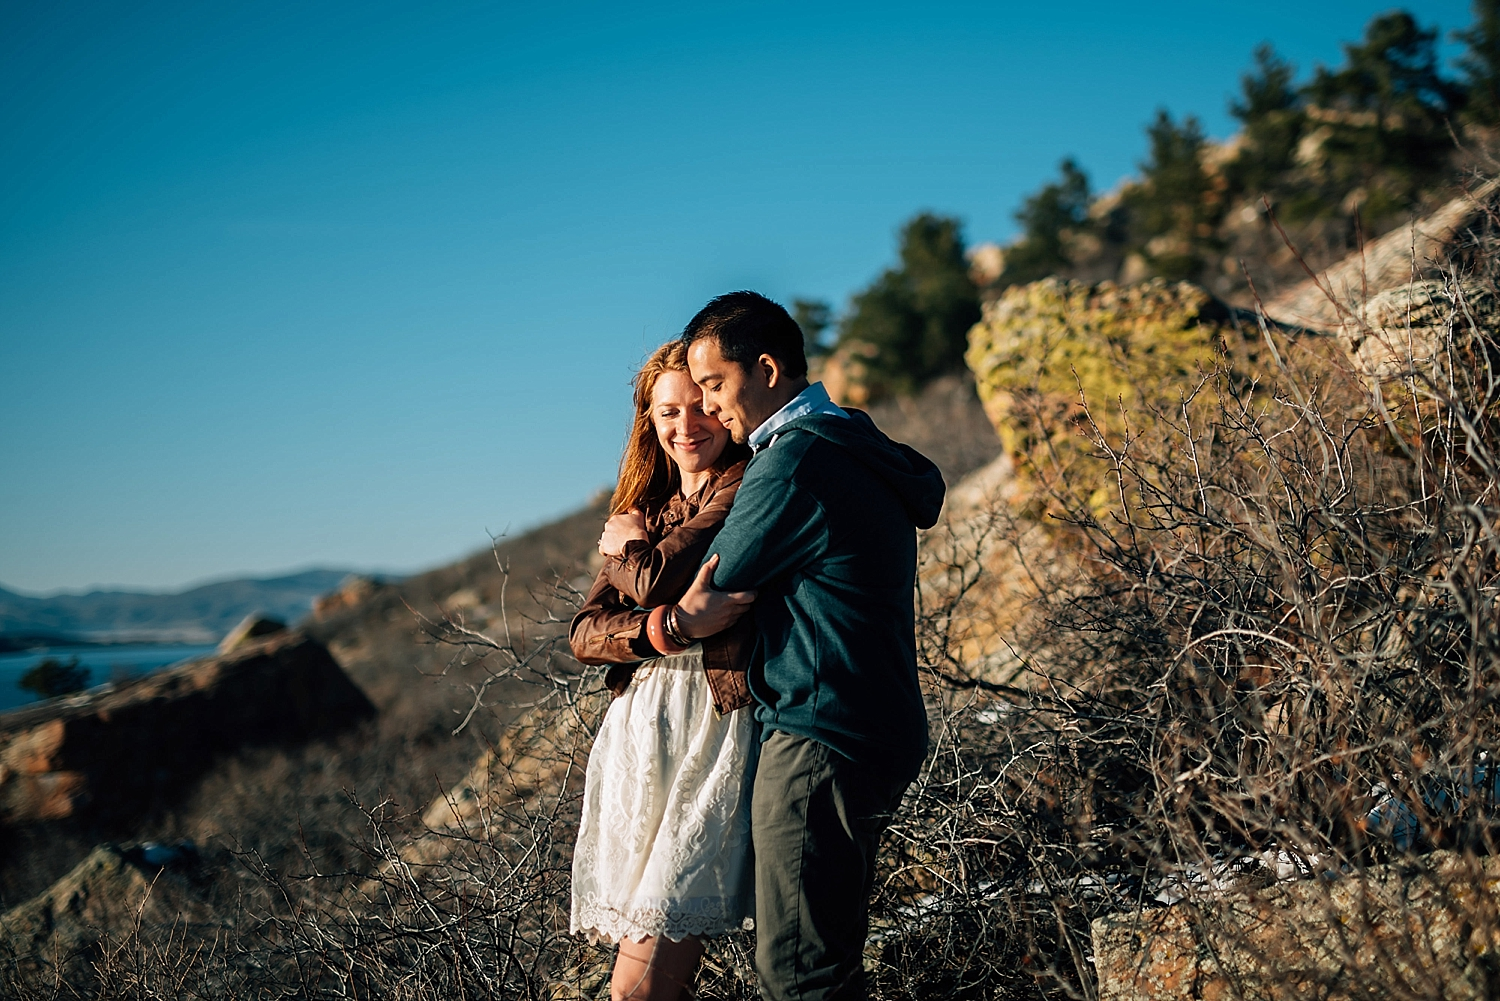 Horsetooth reservoir is so beautiful! I would love to have my engagement photos taken here!Photo by Maddie Mae Photography